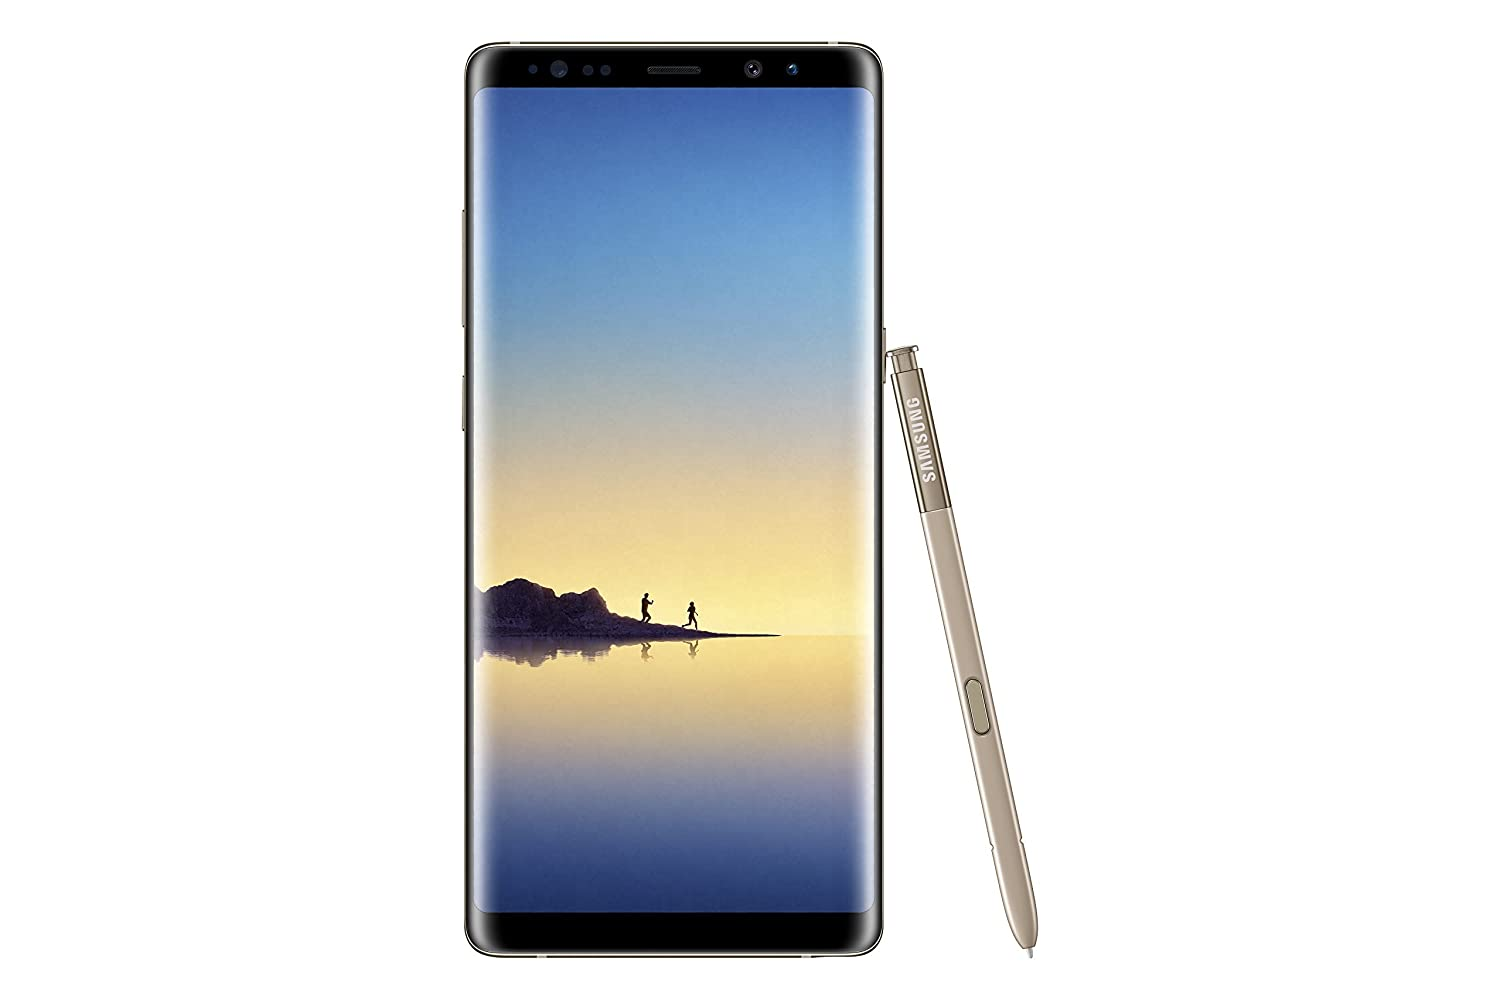 Samsung Galaxy Note 8, Smartphone Libre (6.3'', 6GB RAM, 64GB, 12MP/Versión Italiana: No Incluye Samsung Pay ni Acceso a promociones Samsung Members), Color Dorado